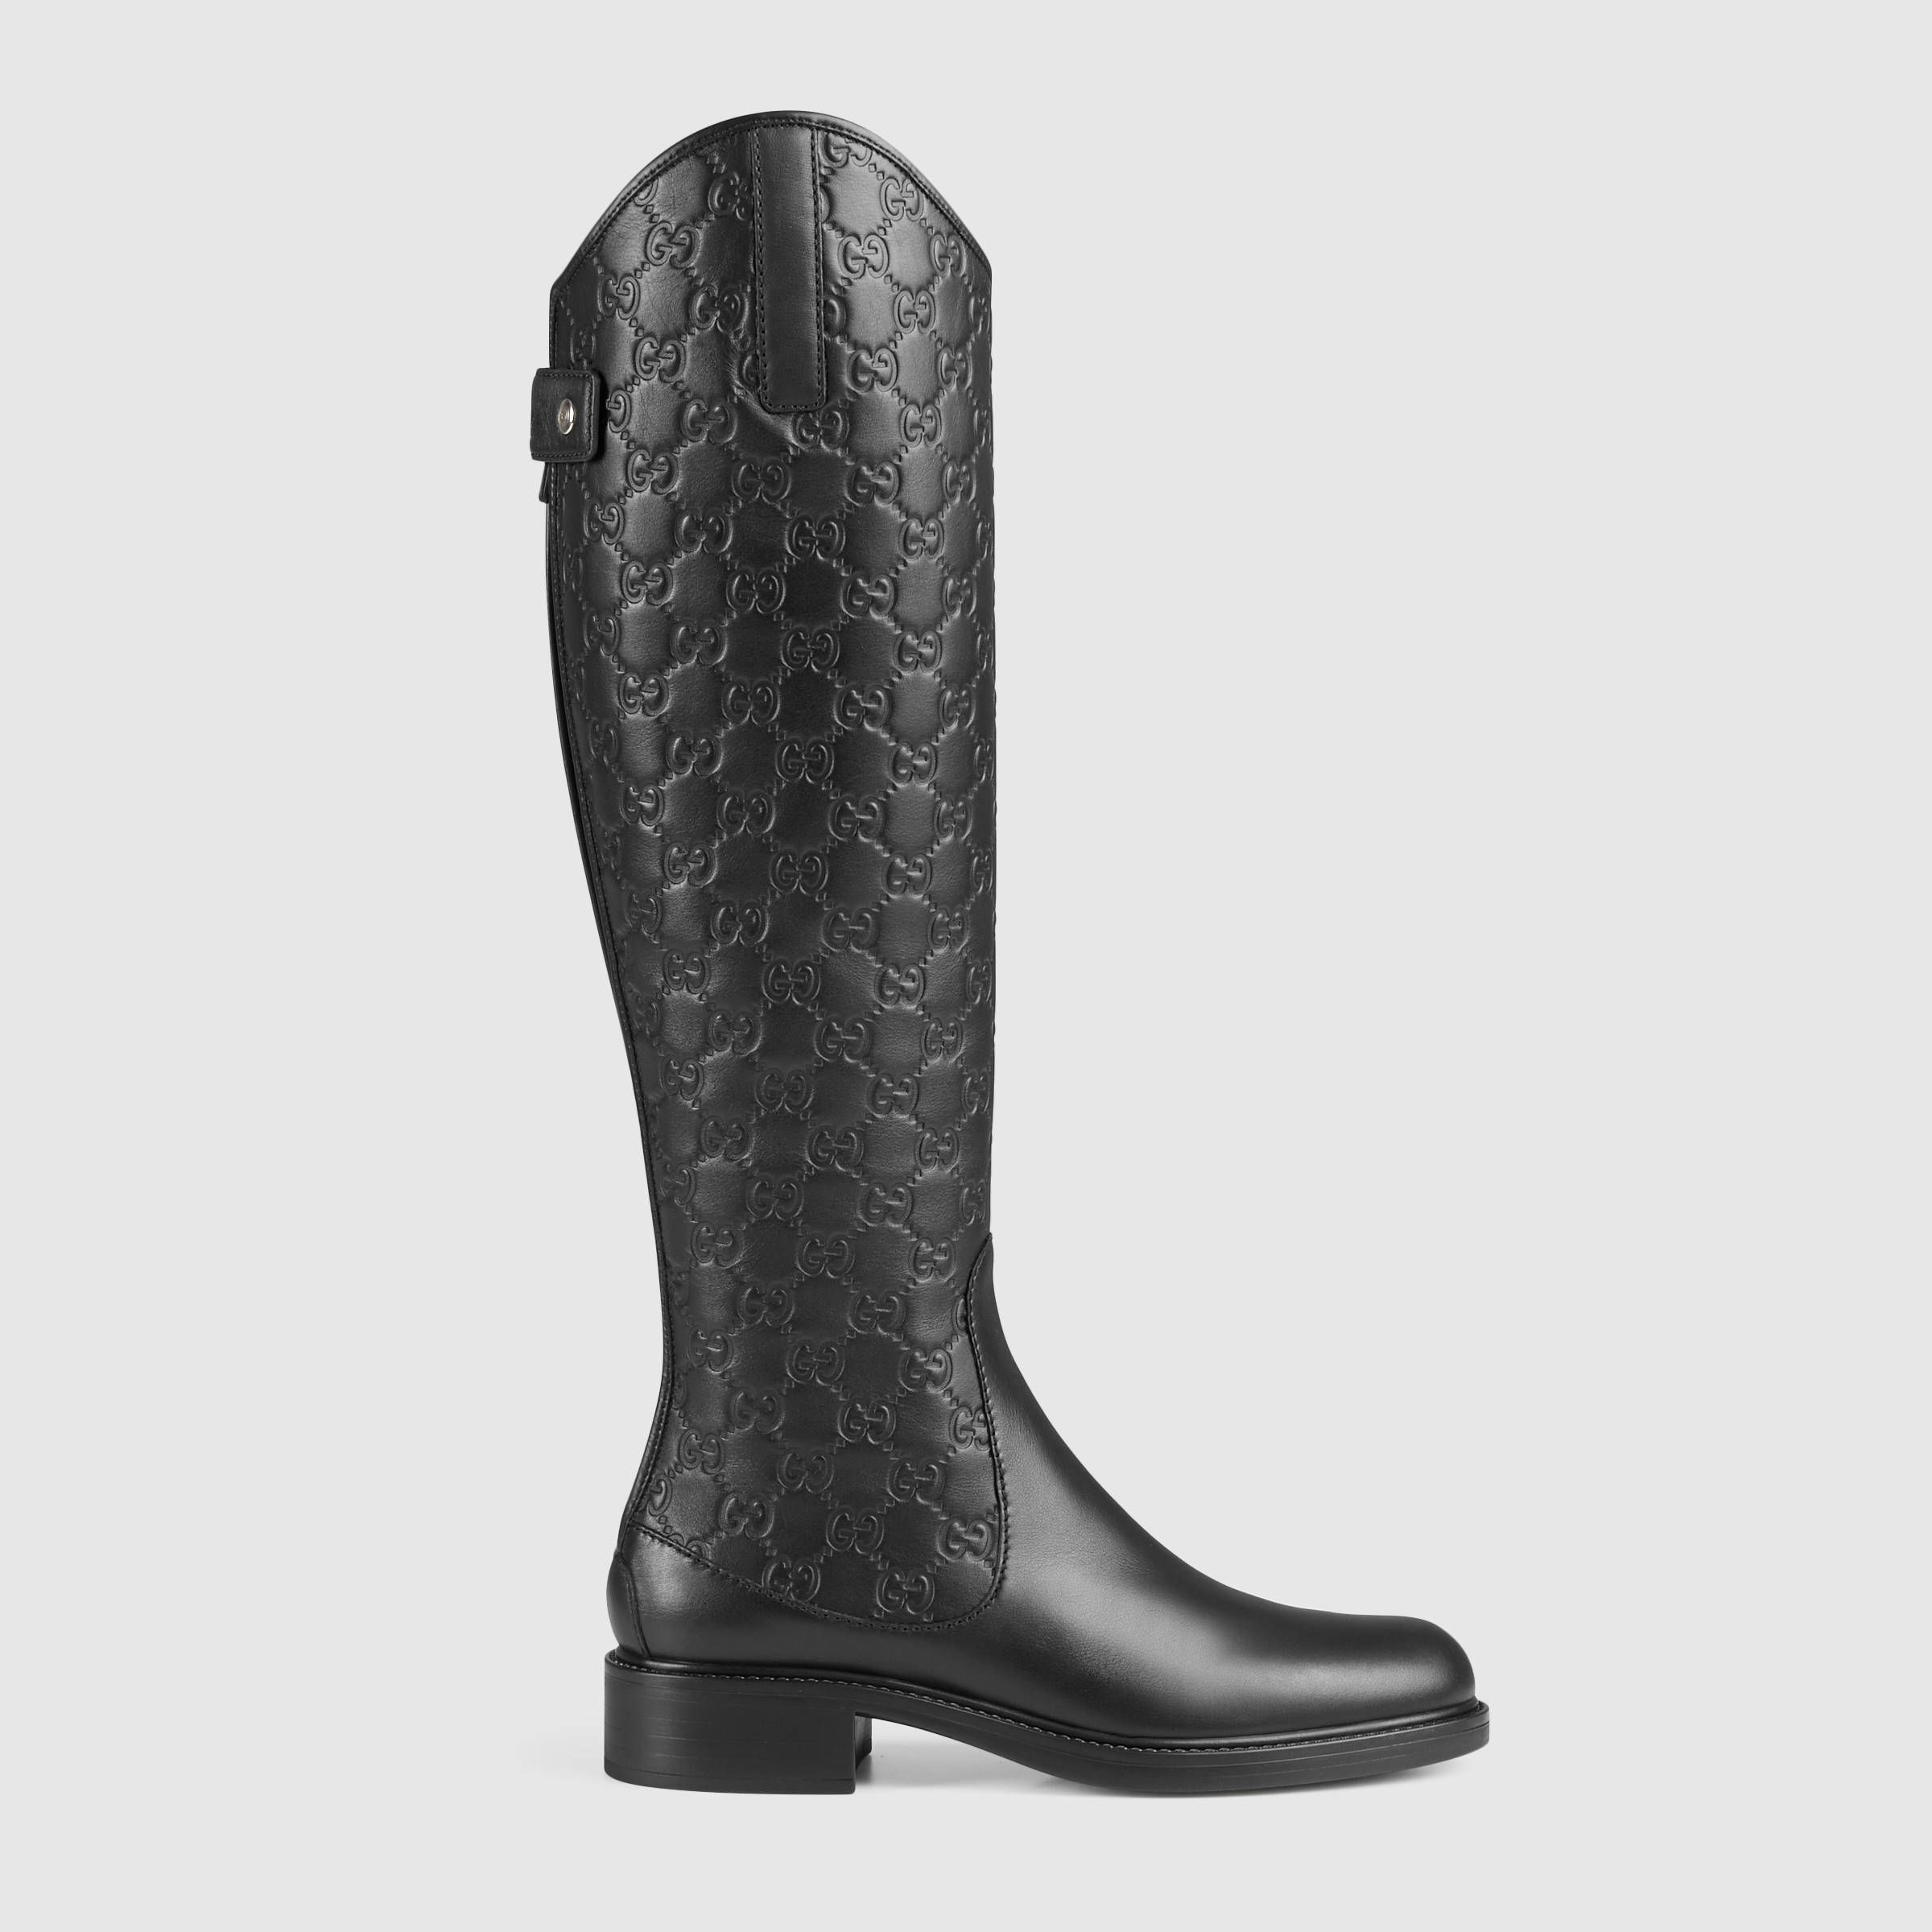 Gucci Women - Maud leather knee boot - 296161A9L201000